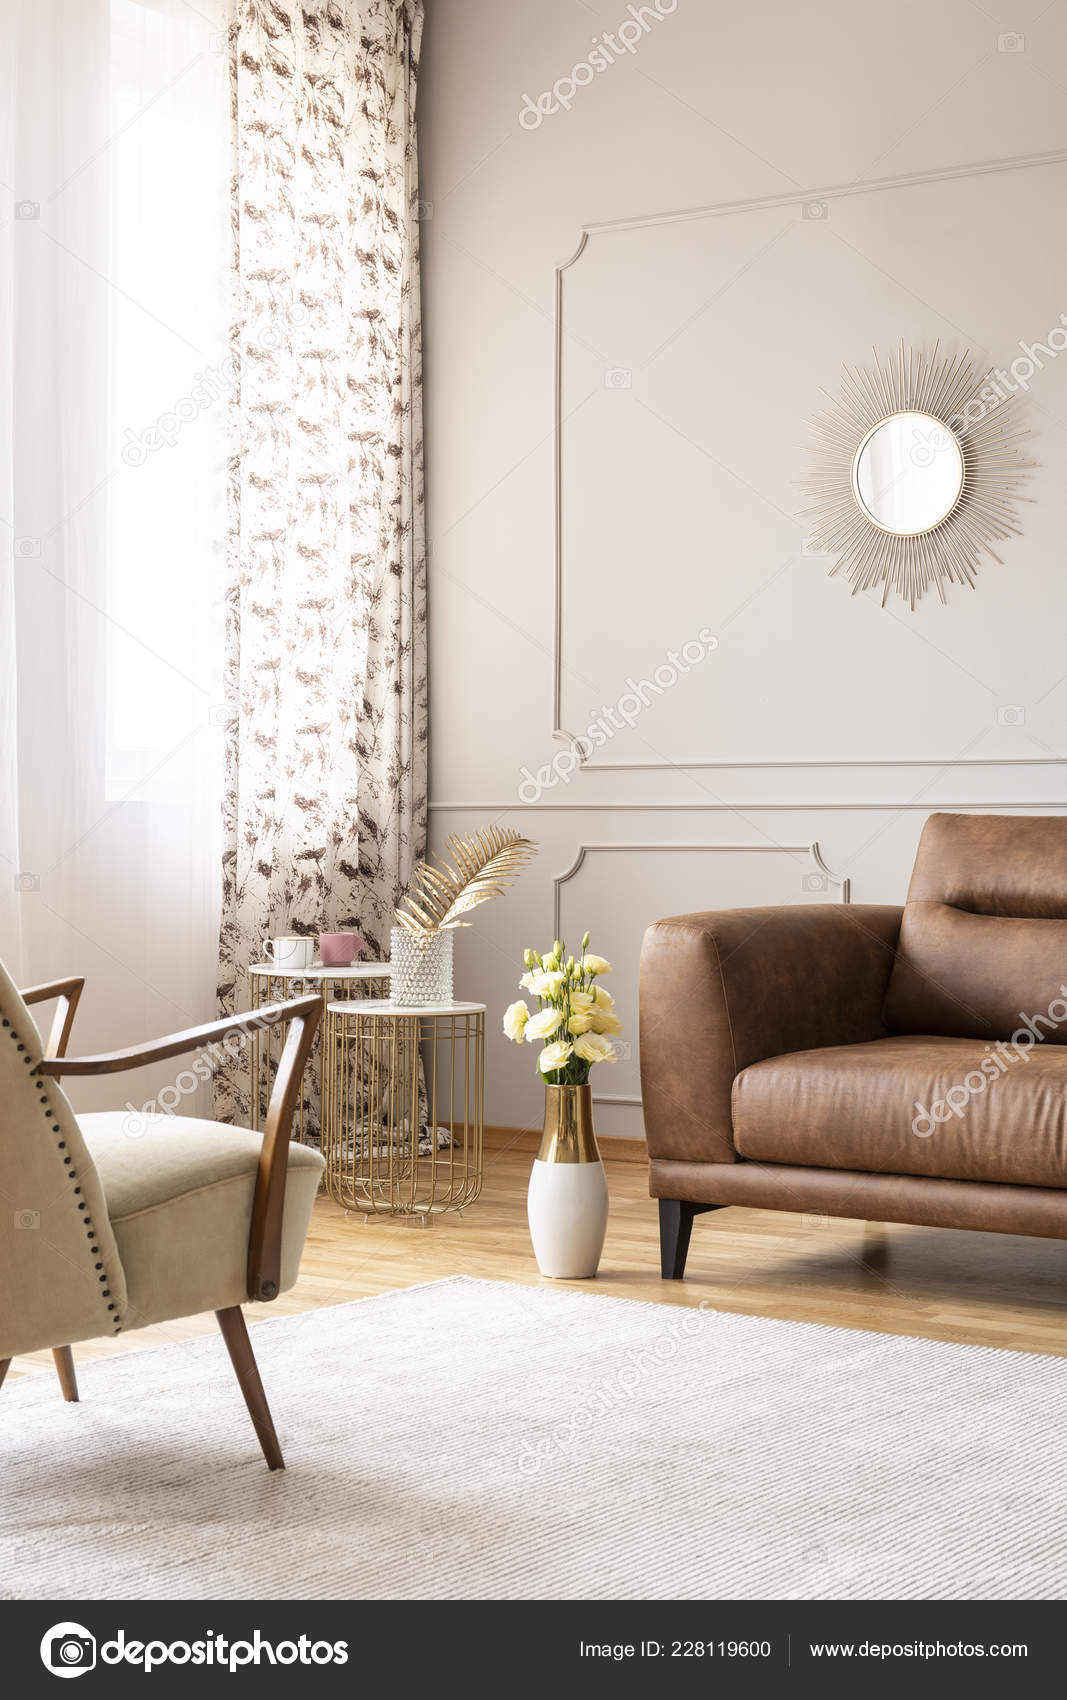 Marvelous Real Photo Bright Living Room Interior White Carpet Window Caraccident5 Cool Chair Designs And Ideas Caraccident5Info